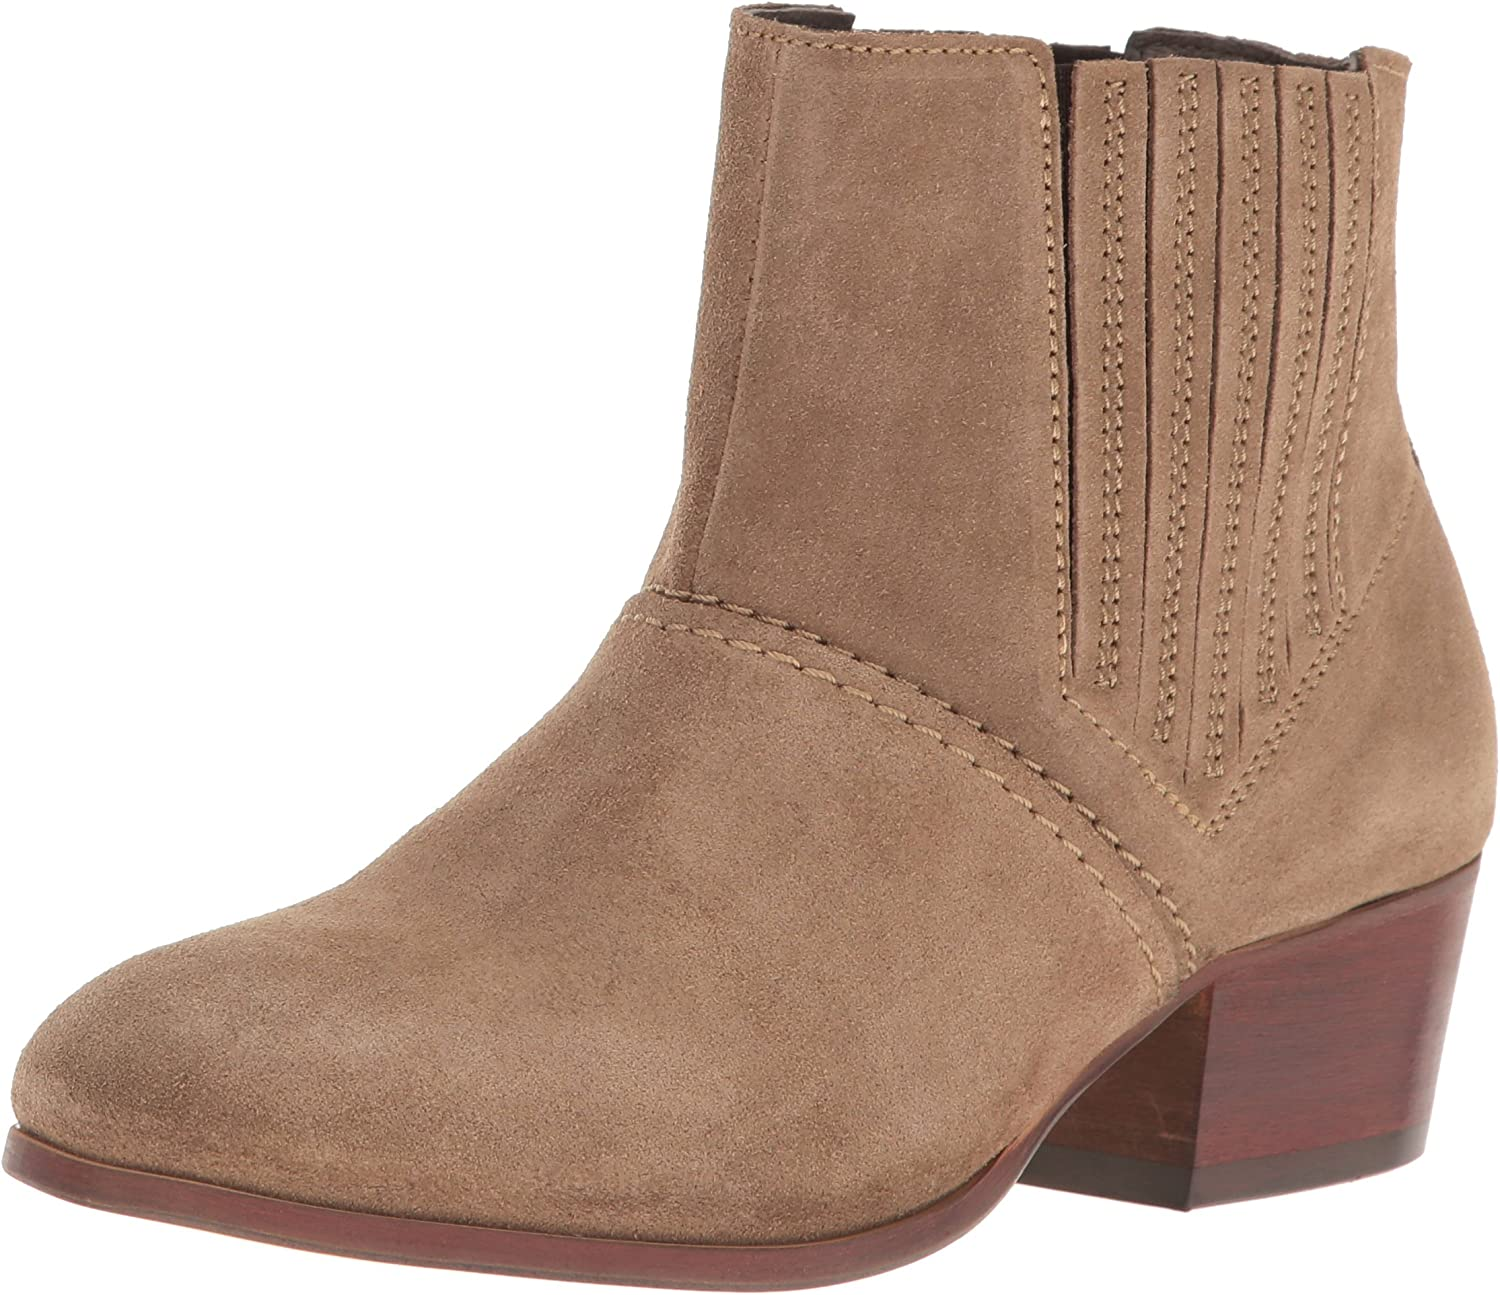 H By Hudson Womens Paige Suede Ankle Bootie